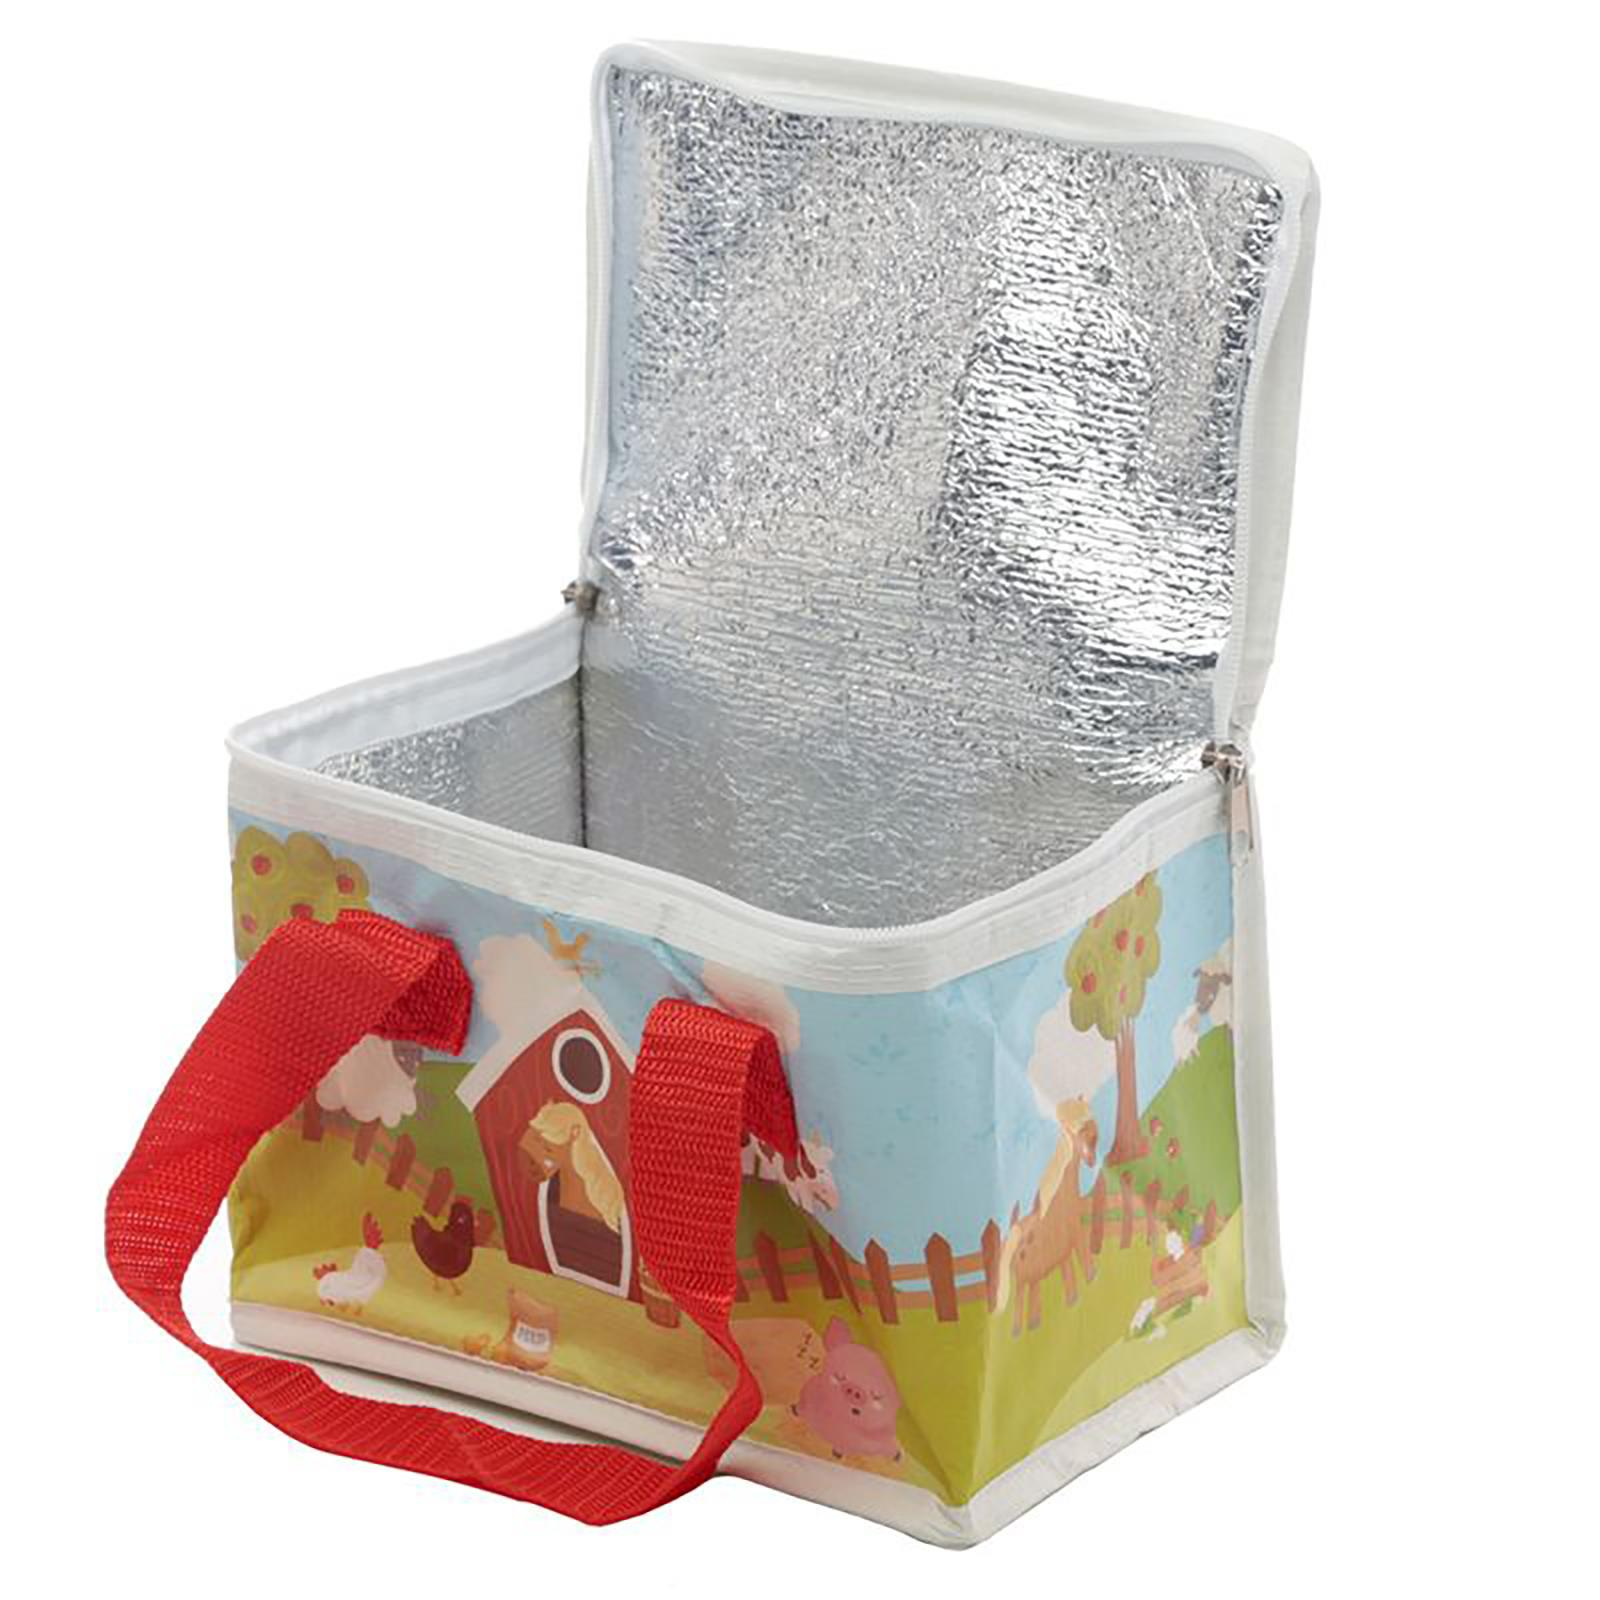 Cool-Bag-School-Picnic-Lunch-Box-Insulated-Small-Thermal-Cooler-Novelty-5-Litre miniatura 27